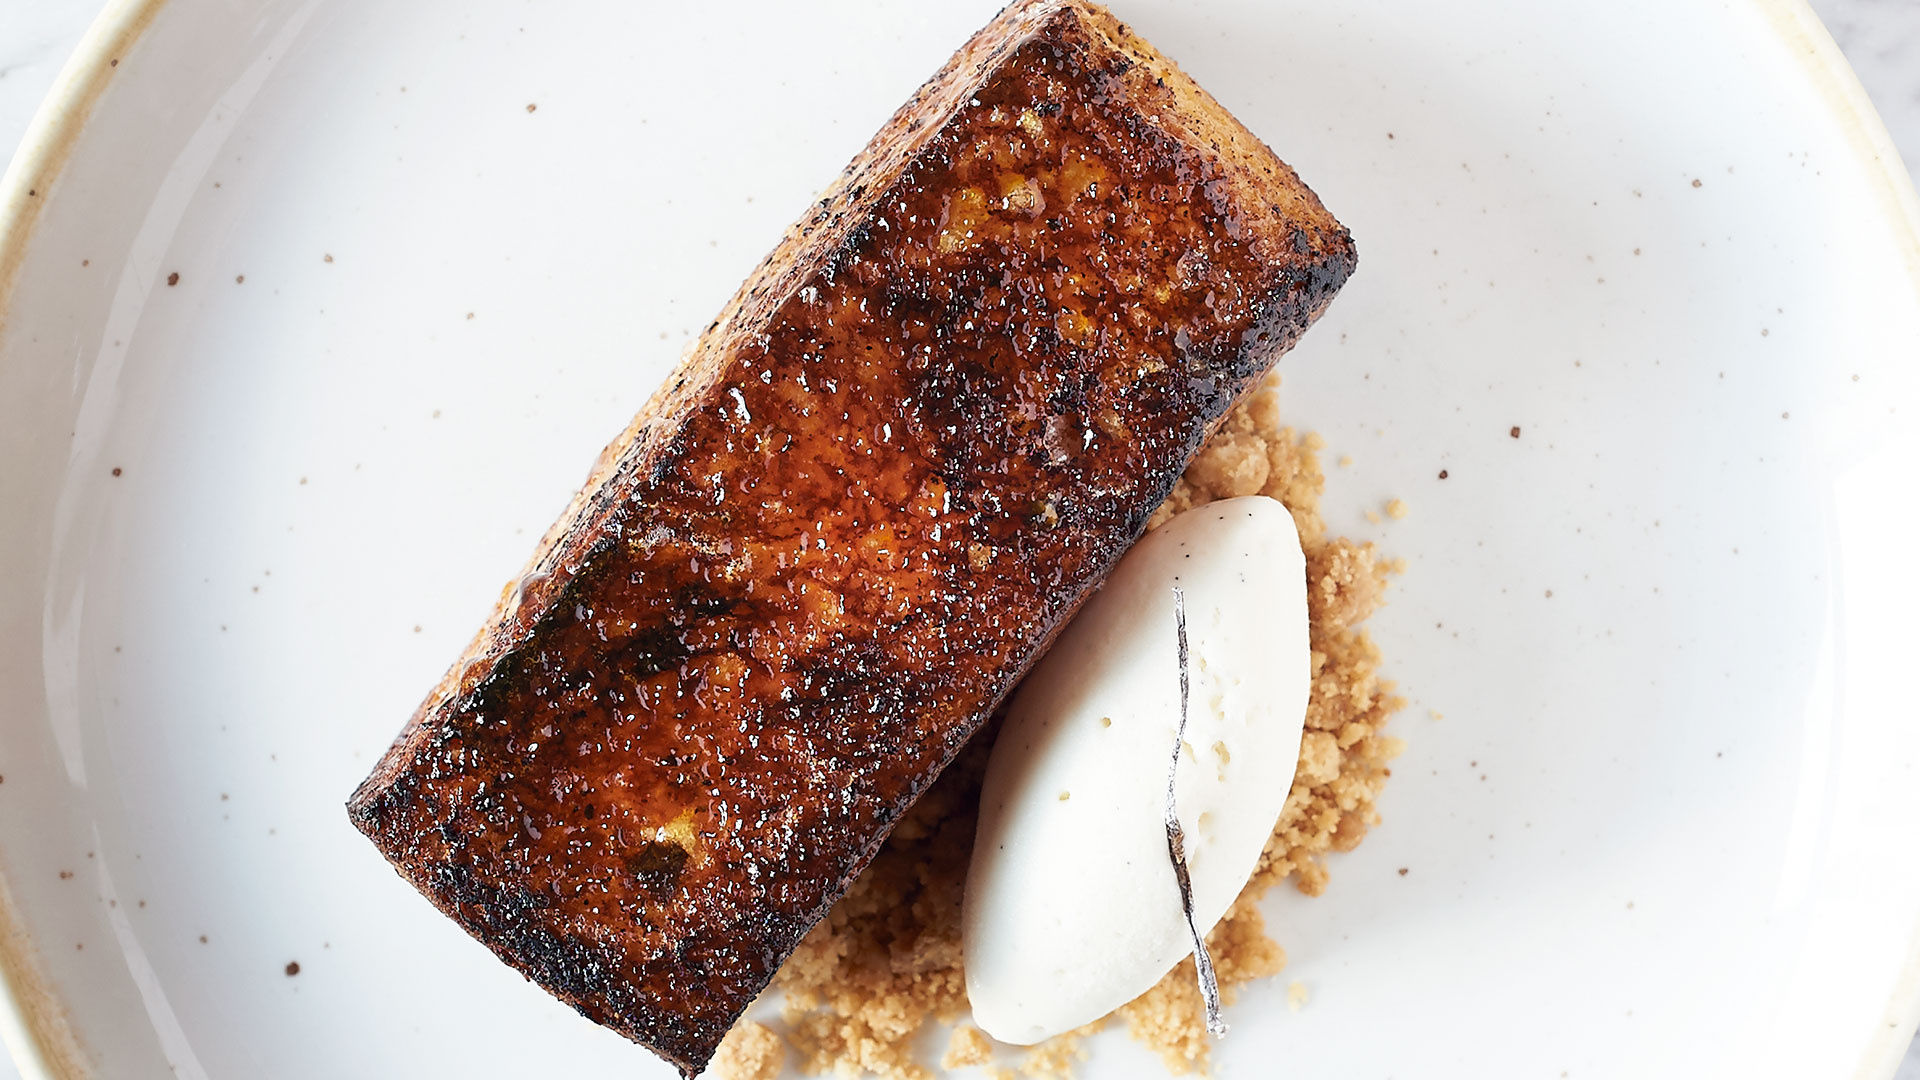 Jun Tanaka's pain perdu with crème anglaise